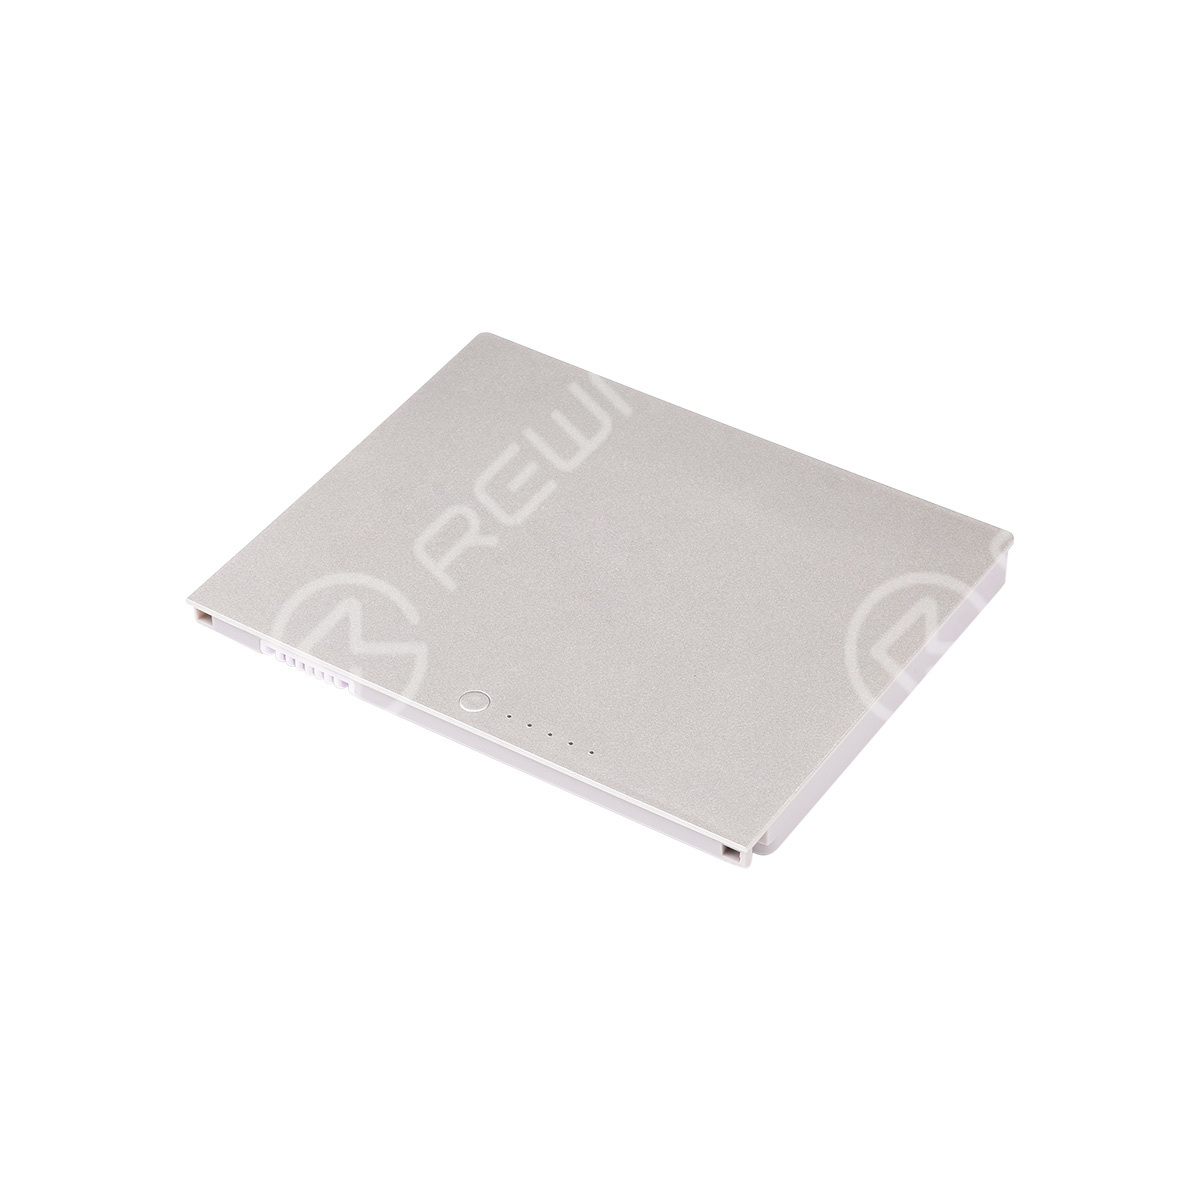 Battery A1175 Compatible For Macbook Pro 15 inch A1150/A1260(2006-2008)